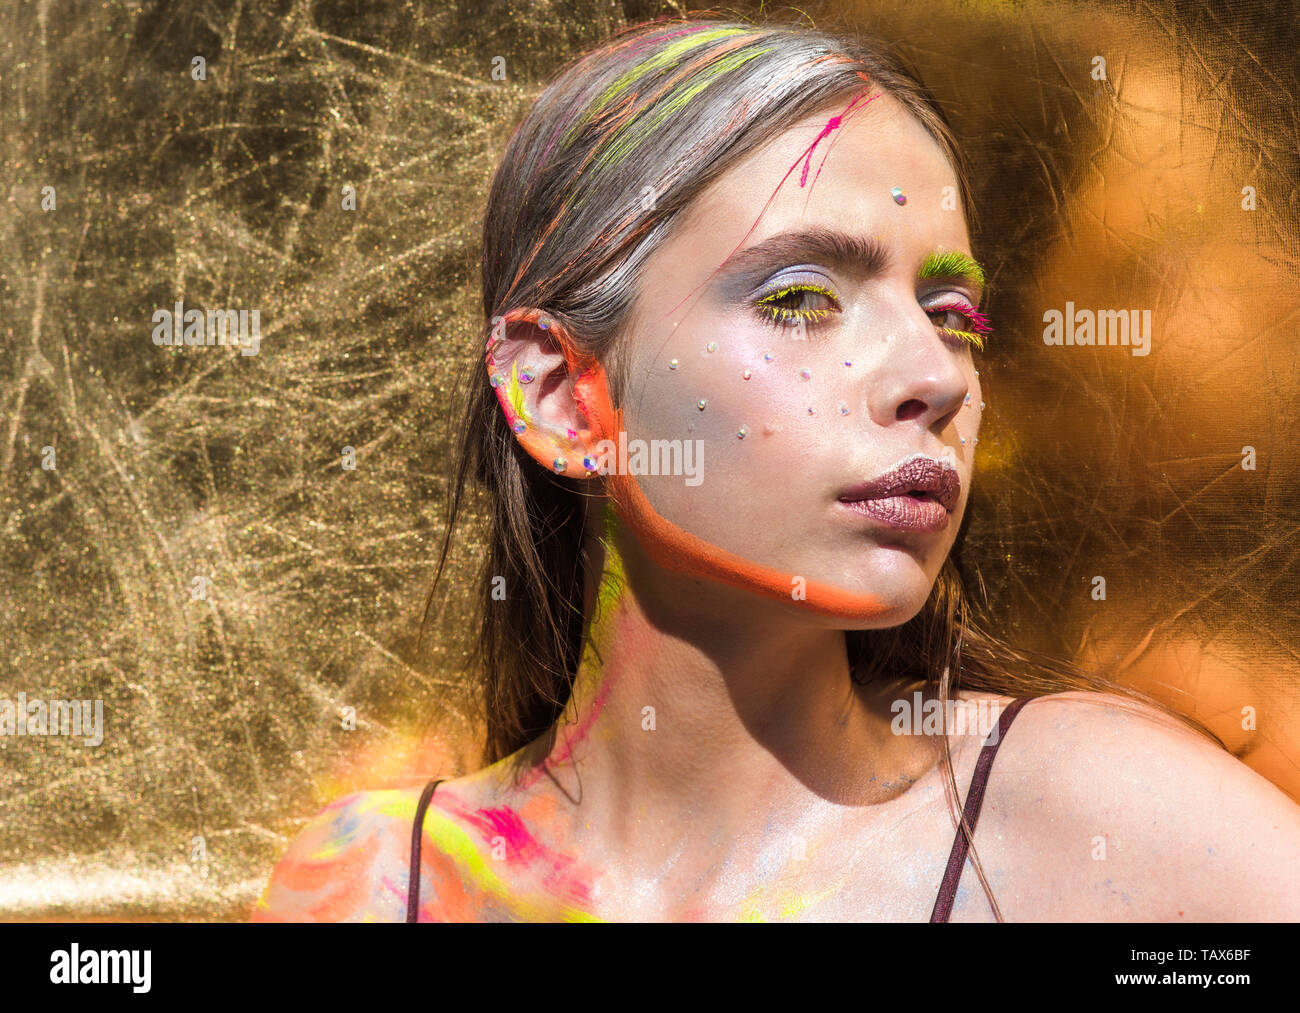 Indian Woman With Colorful Neon Paint Makeup Face Indian